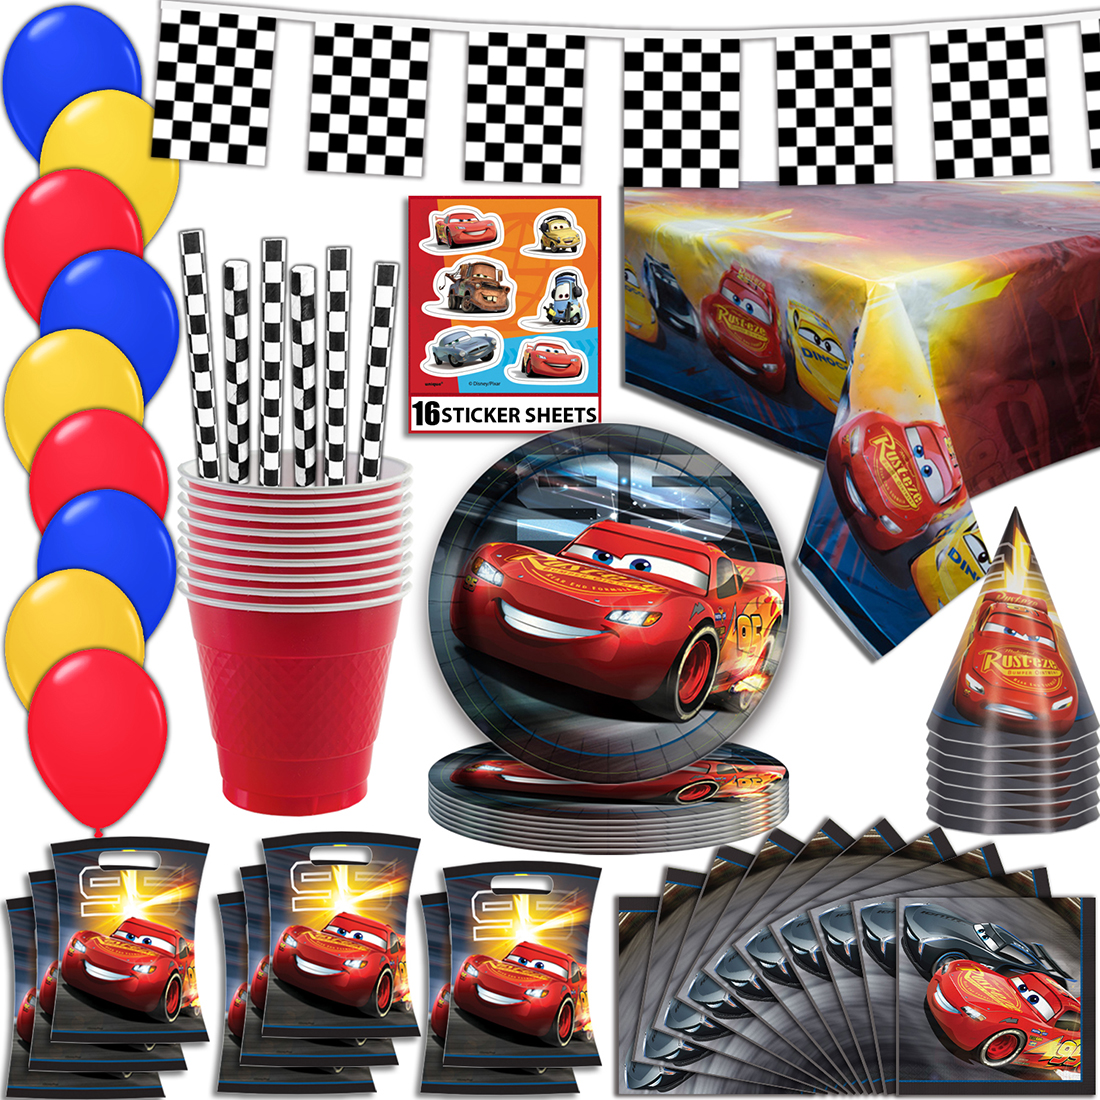 4 Racecar Sticker Packs for Kids Adults Race Car Stickers Party Favors Pack Racing Party Supplies, Decorations